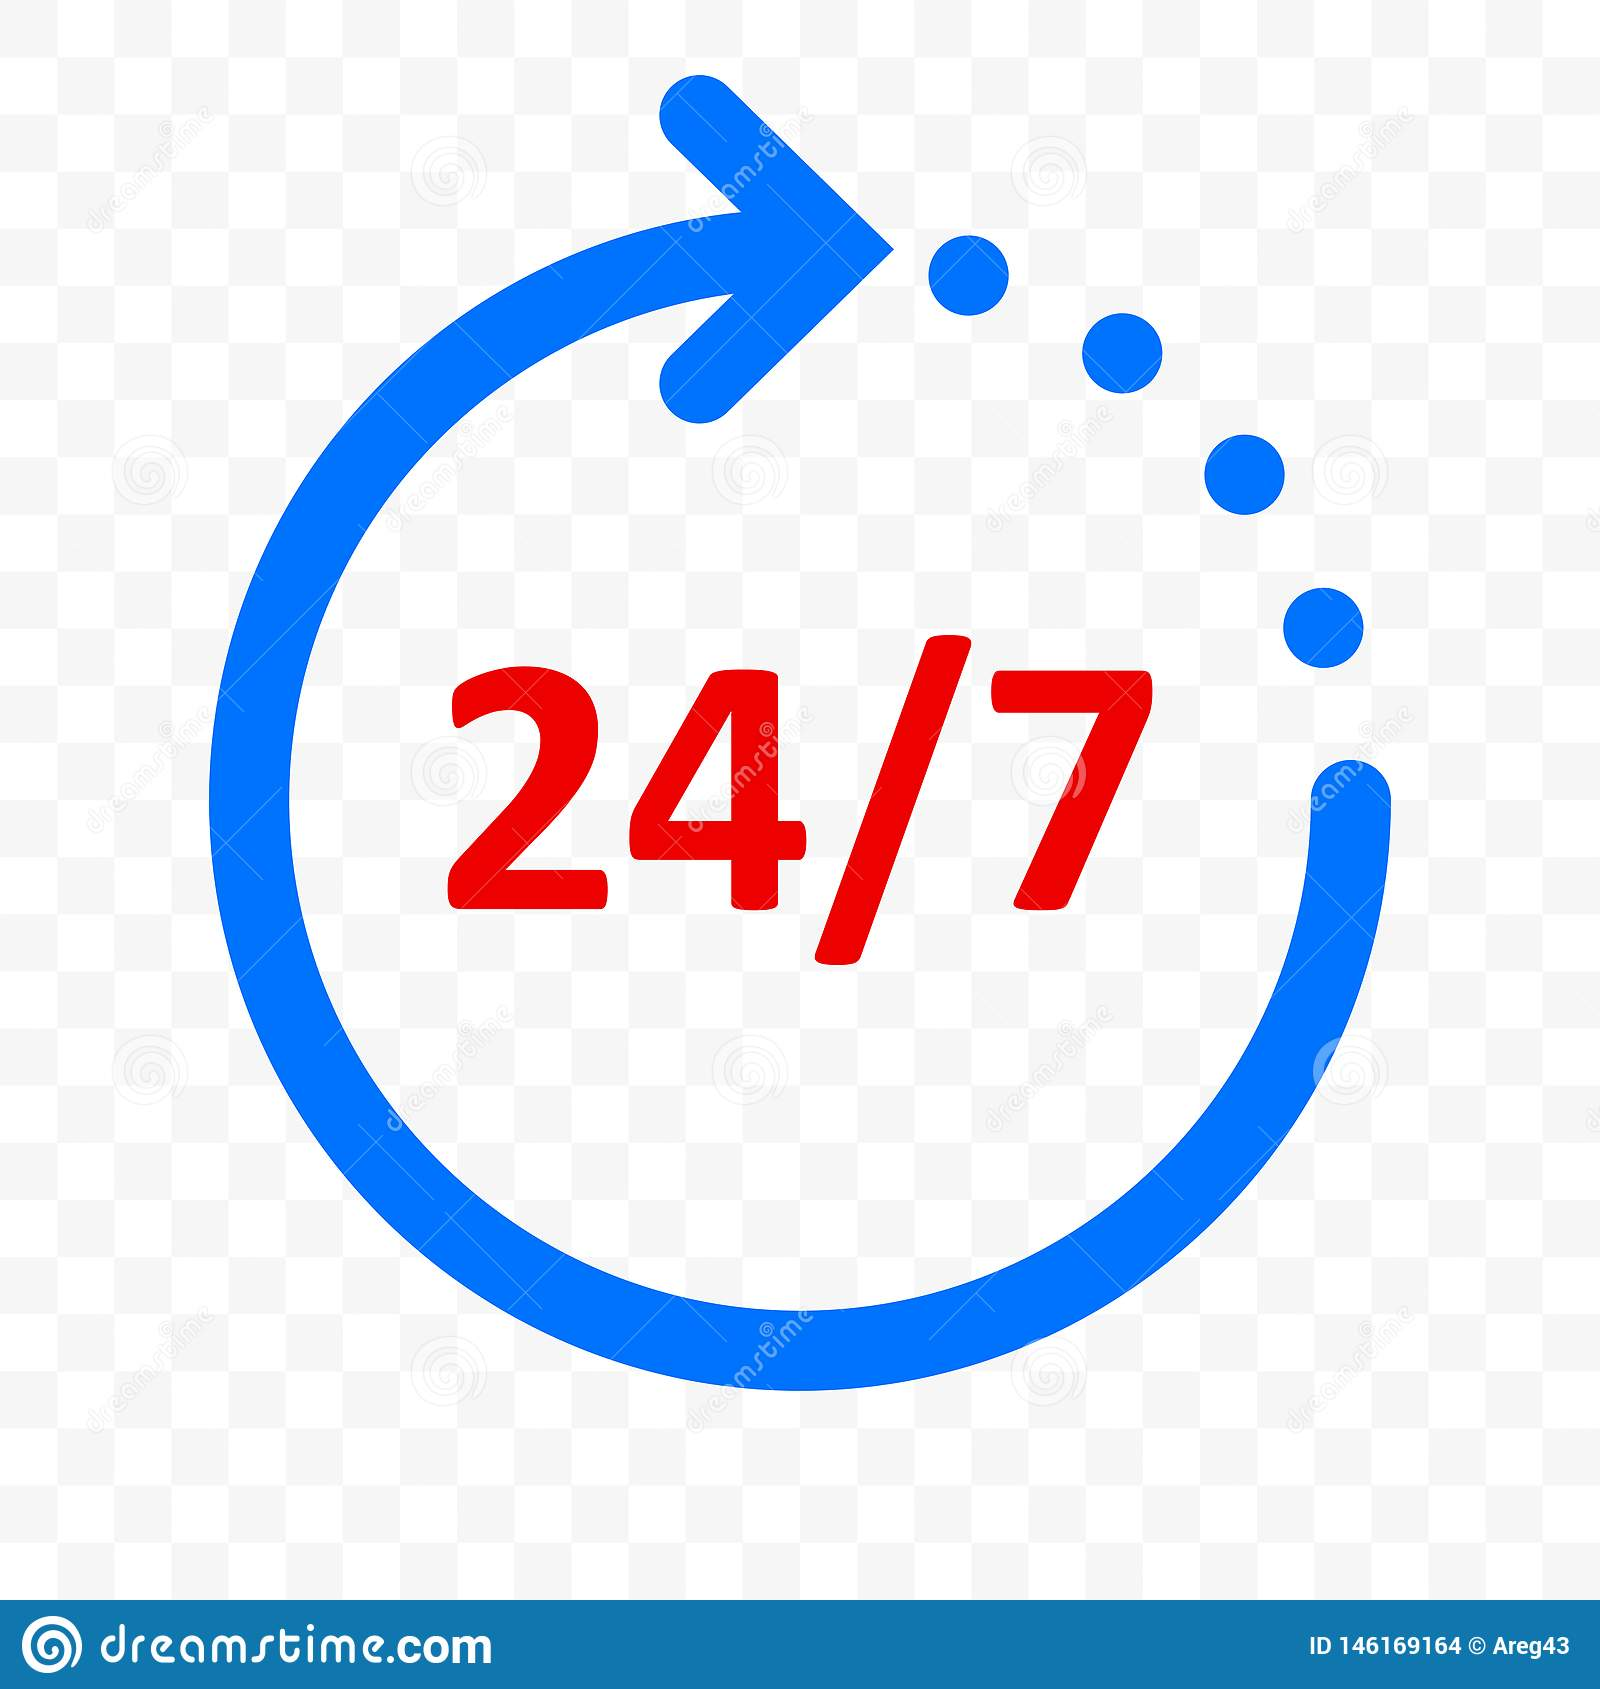 24 7 arrow icon, customer support, delivery and 24 hours, 7 days week open symbol. Vector round clock arrow sign